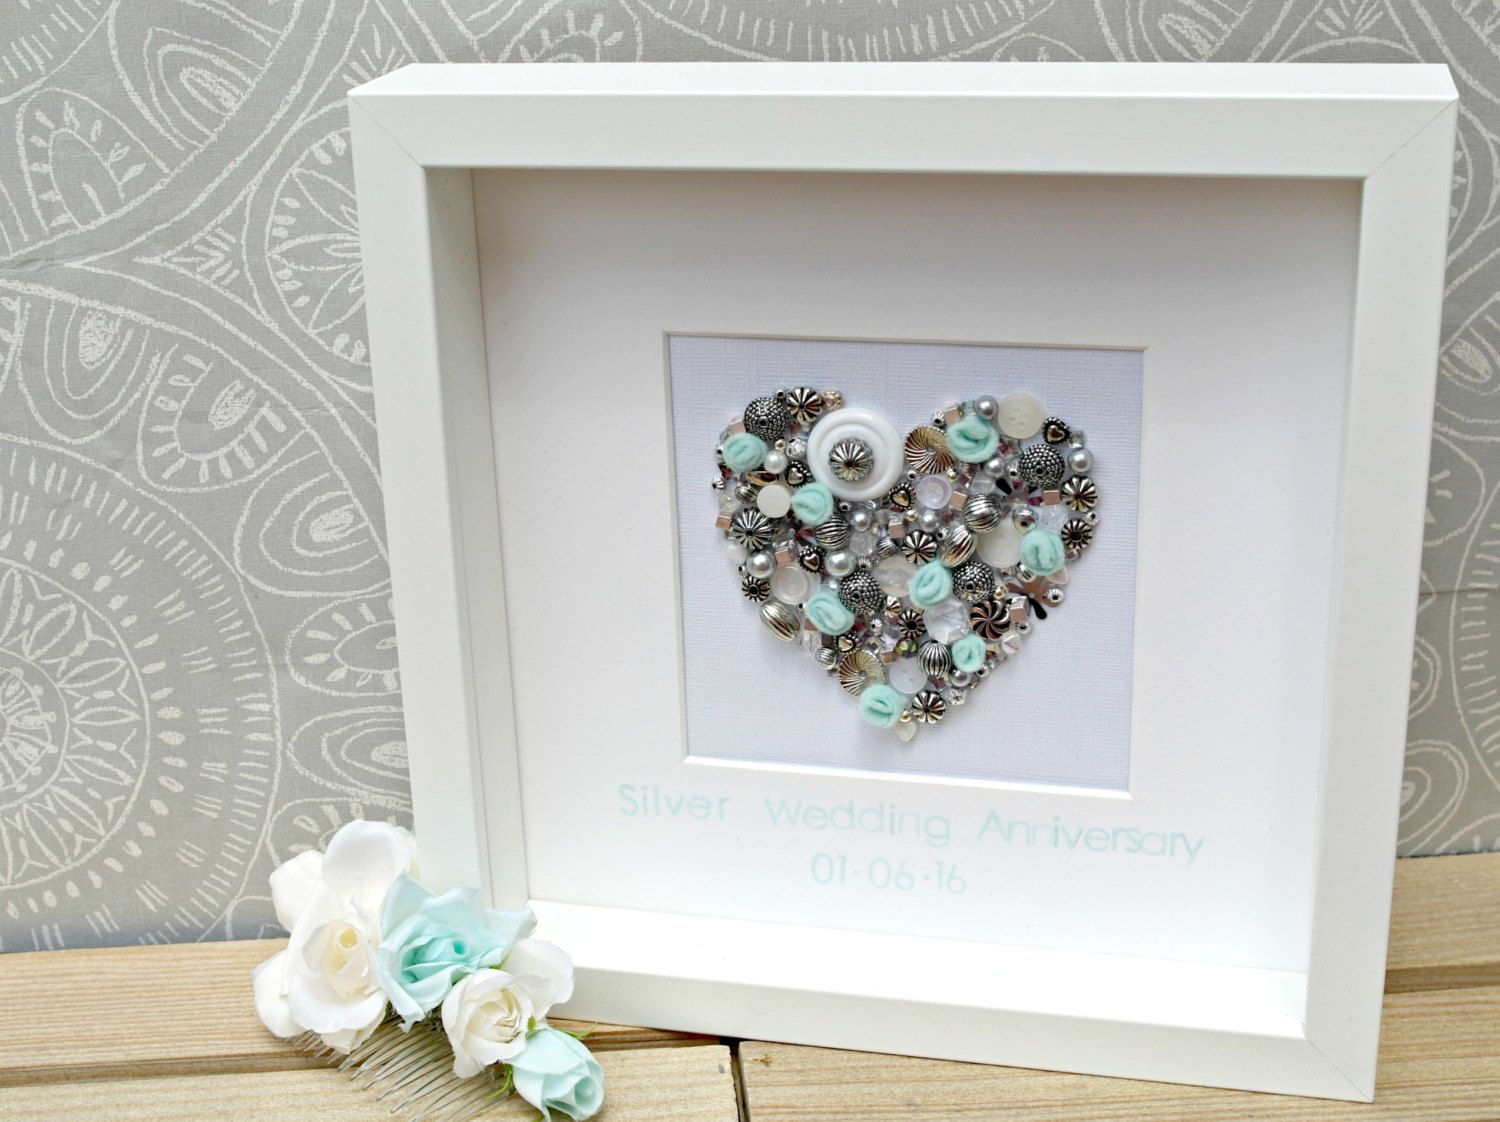 Silver Wedding Gift: Silver Wedding Anniversary Gift. Sequin And Bead Heart